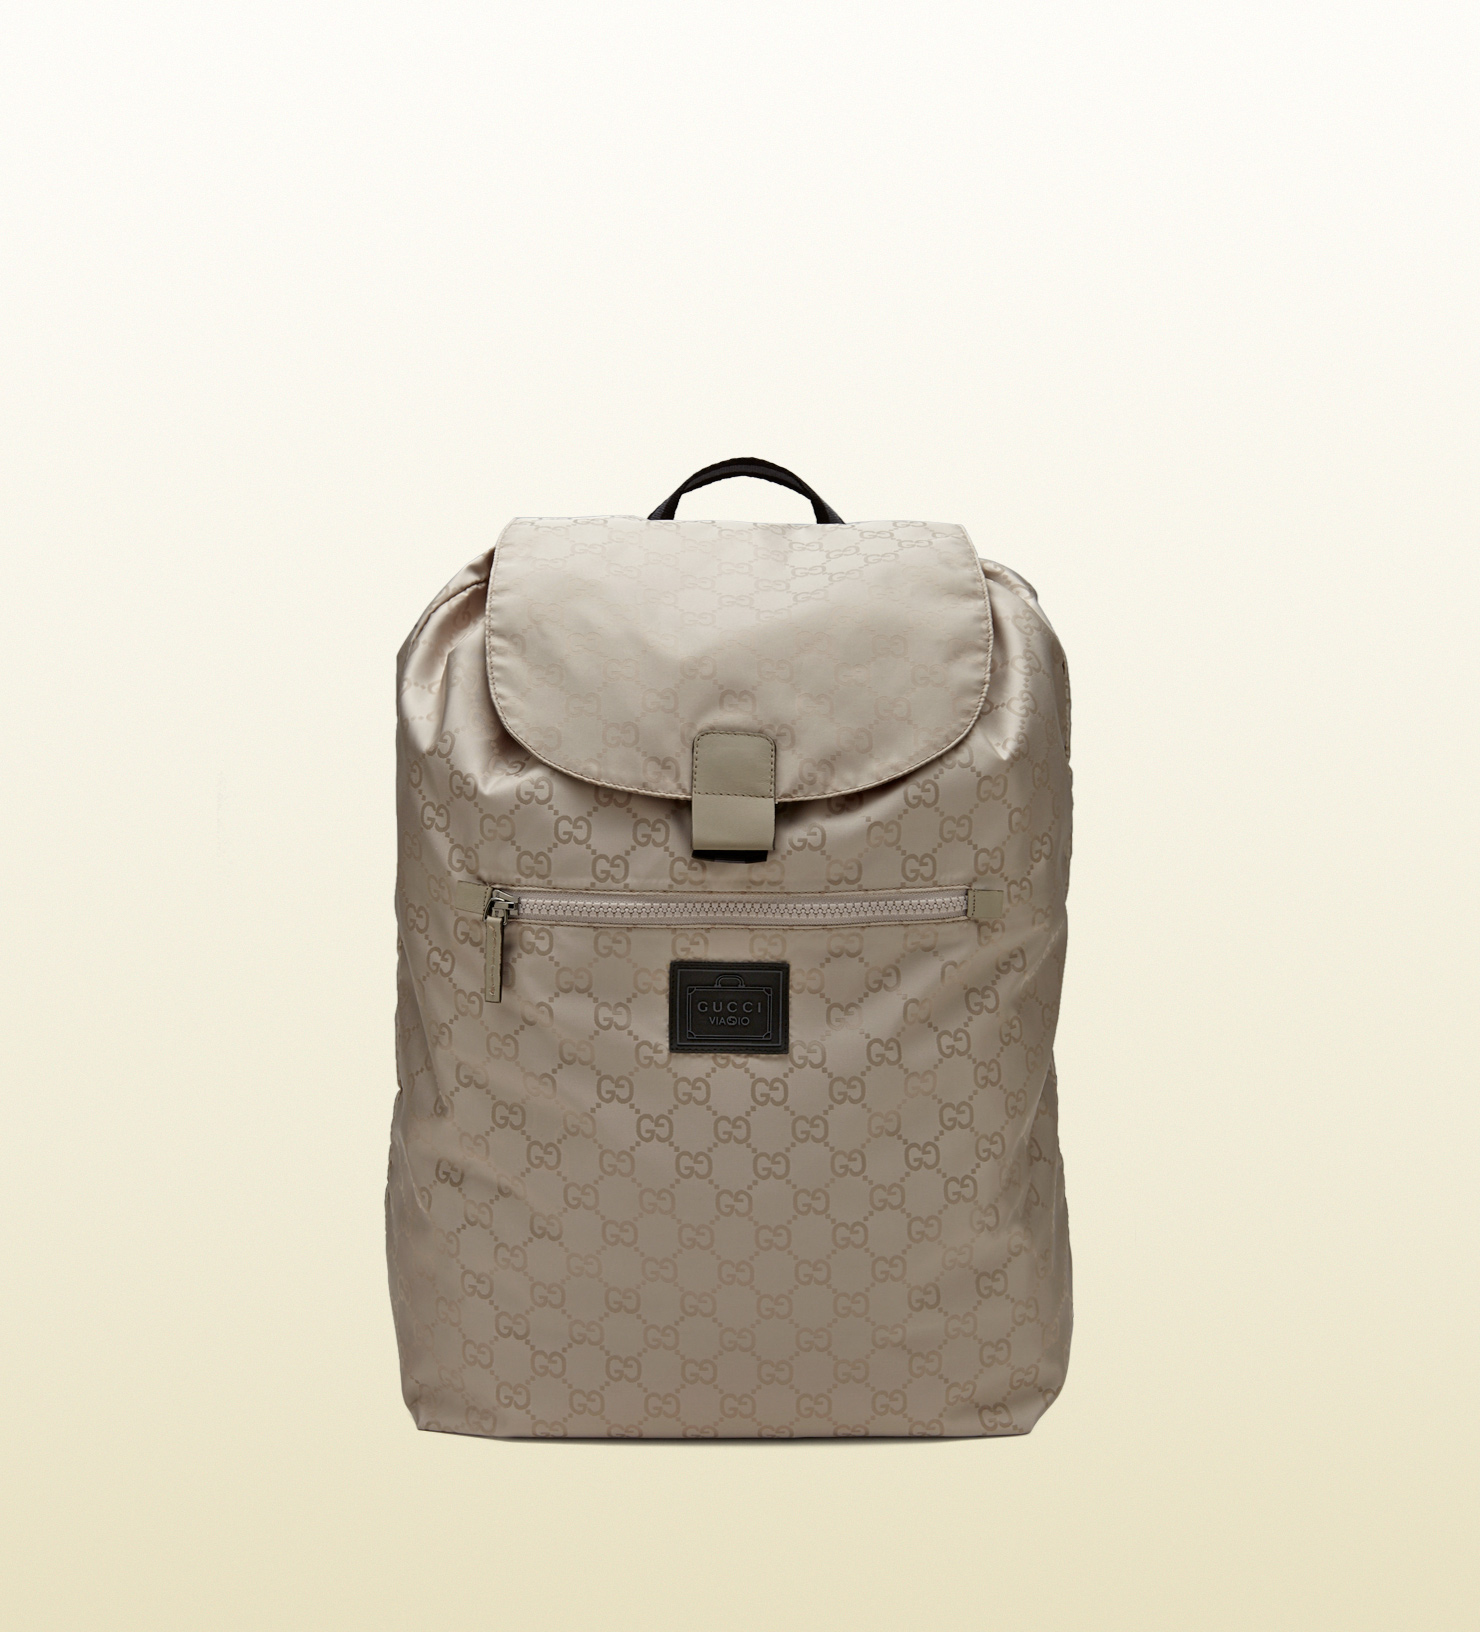 9ba7c5e83760 Lyst - Gucci Gg Nylon Backpack From The Viaggio Collection in Gray ...